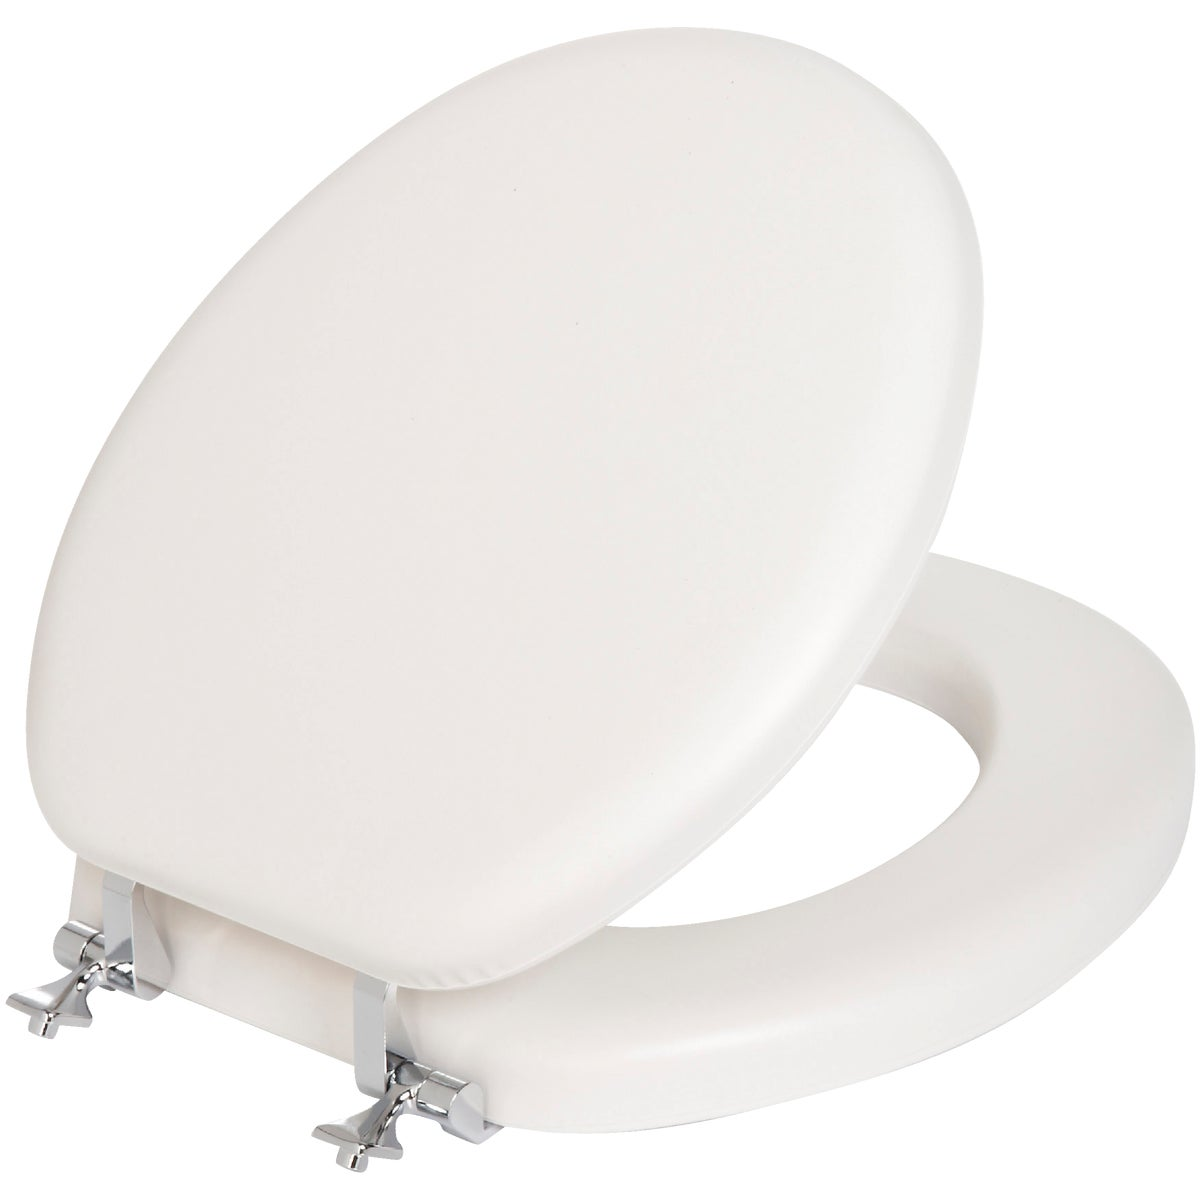 WHITE SOFT ROUND SEAT - 13CP-000 by Bemis Mfg